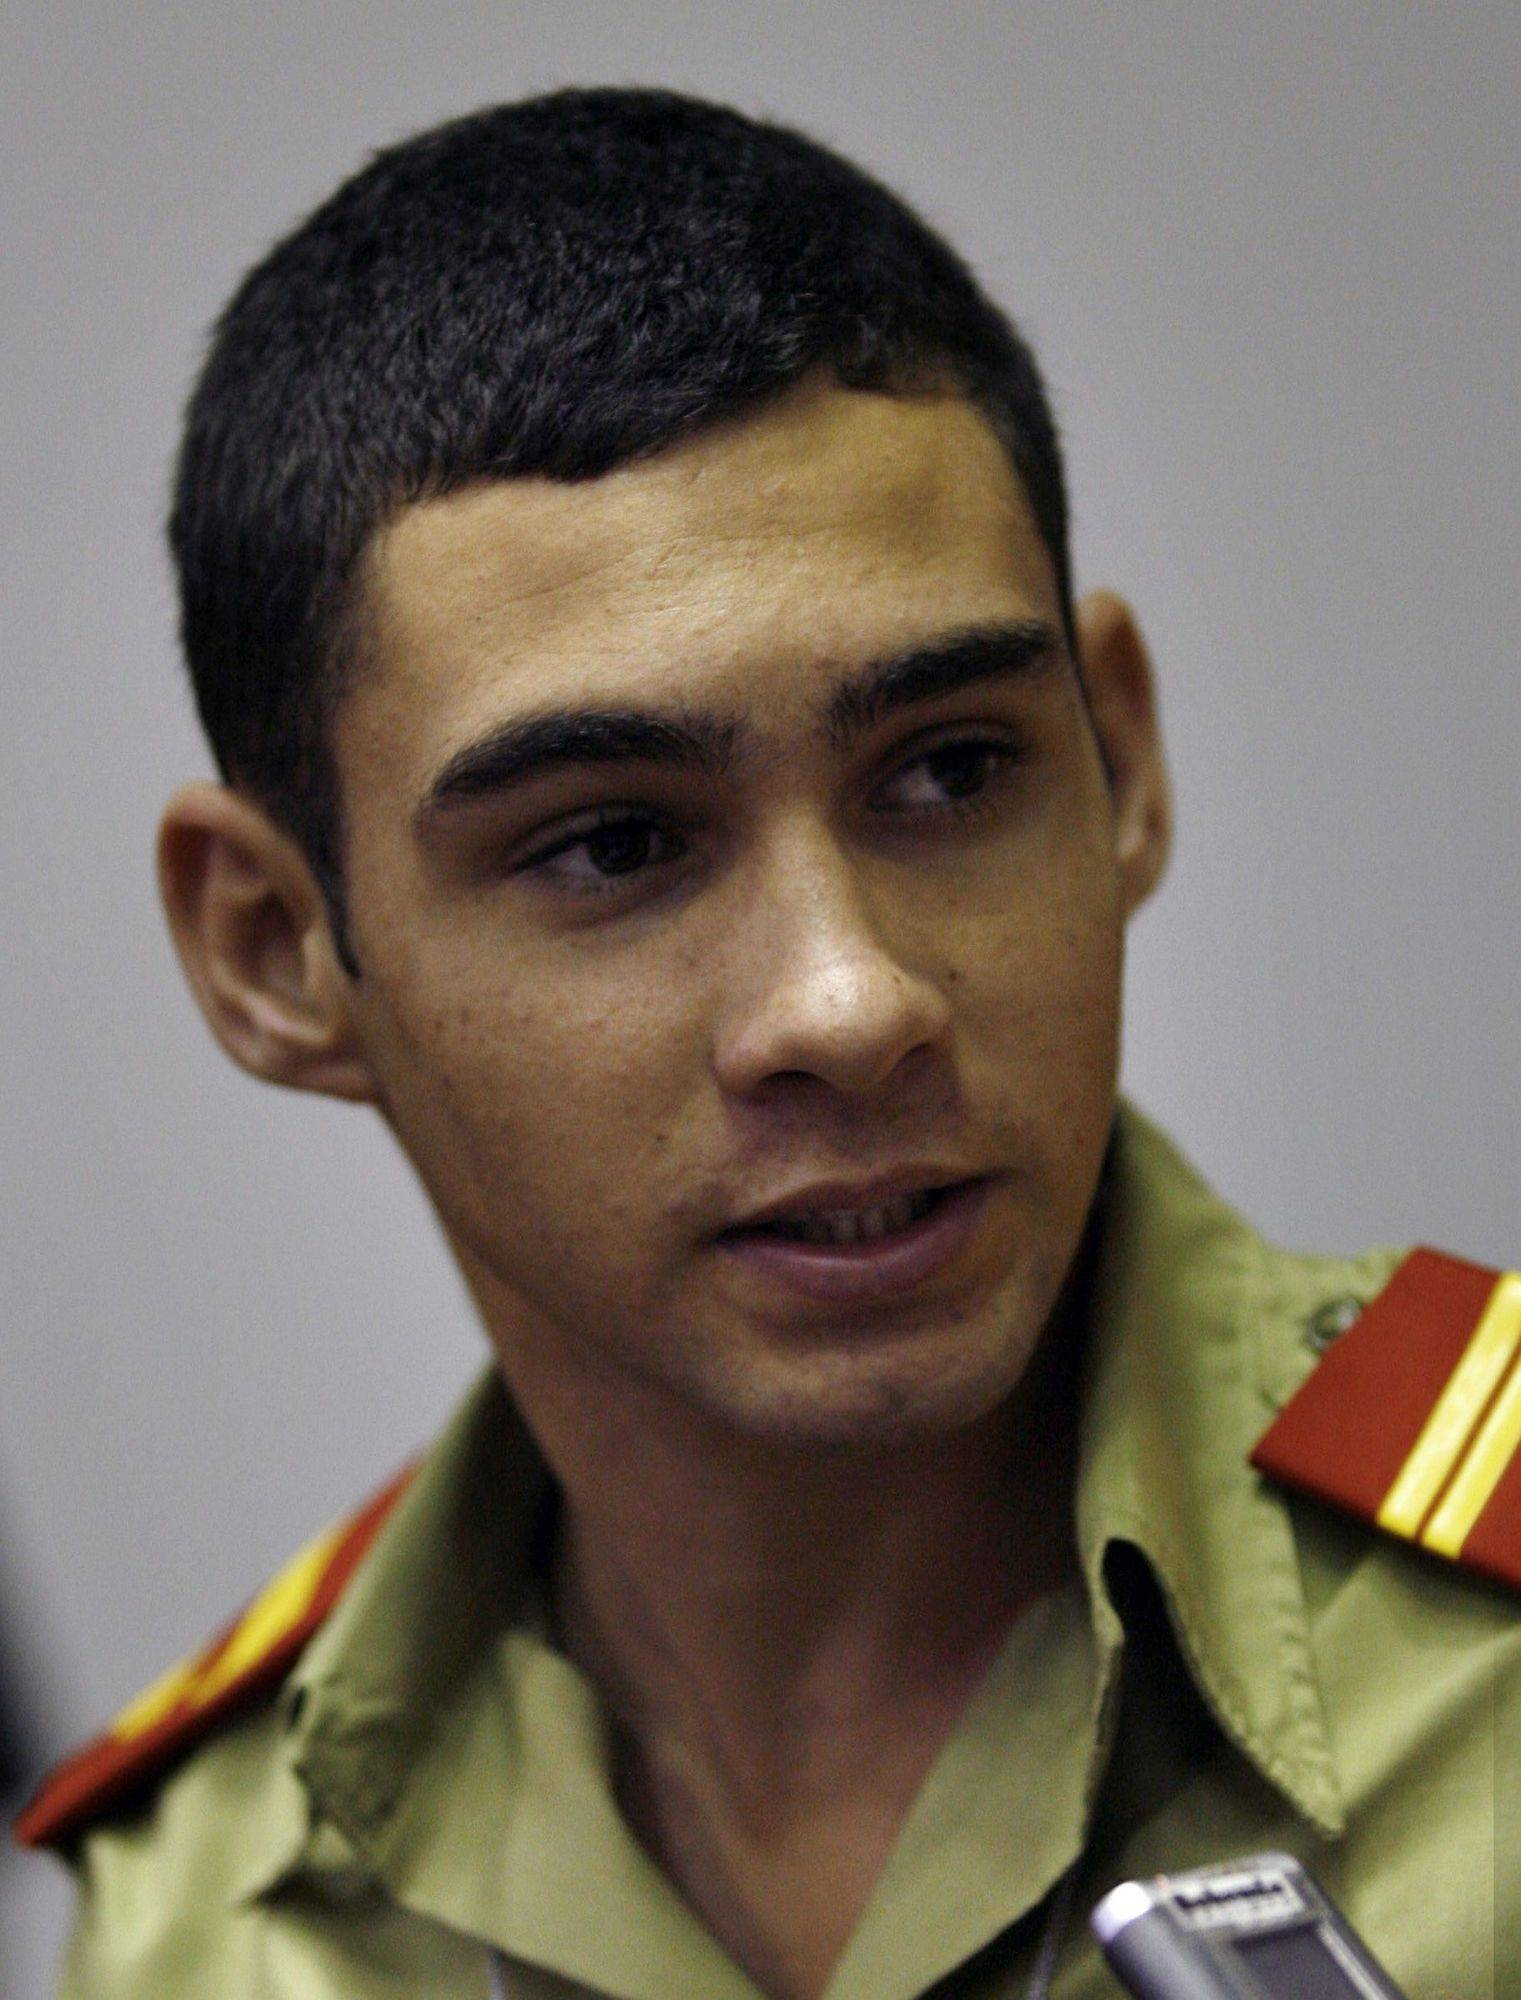 Nearly 10 years after being returned Cuba from the U.S., Elian Gonzalez attends the Union of Young Communists congress in Havana earlier this month.